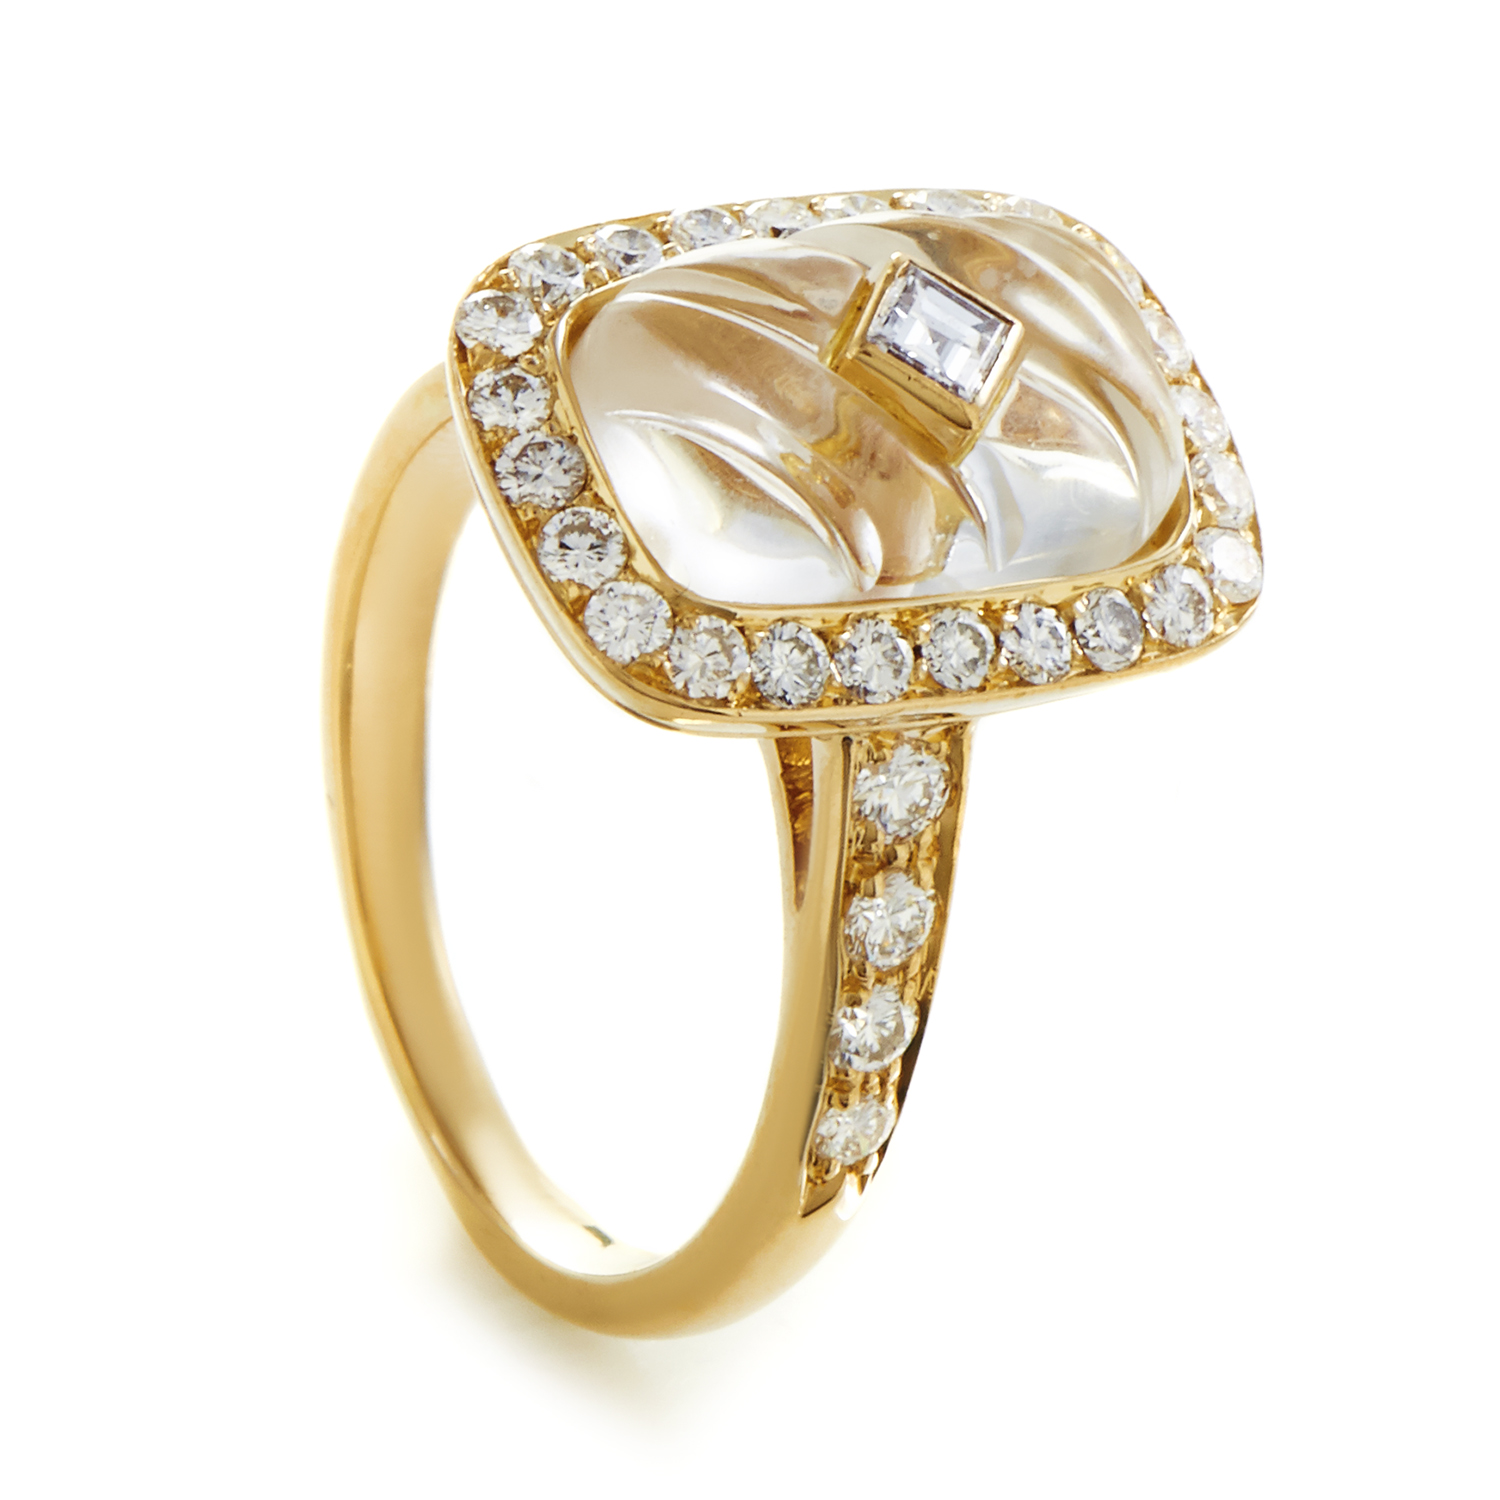 Boucheron Women's 18K Yellow Gold Diamond & Crystal Ring